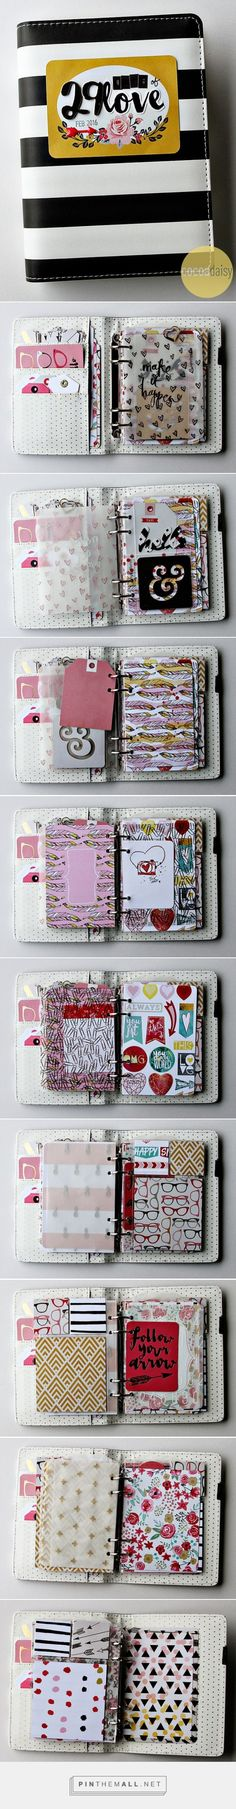 29 Days of Love 2016 by Alissa Fast using the Notebook collection from www.cocoadaisy.com